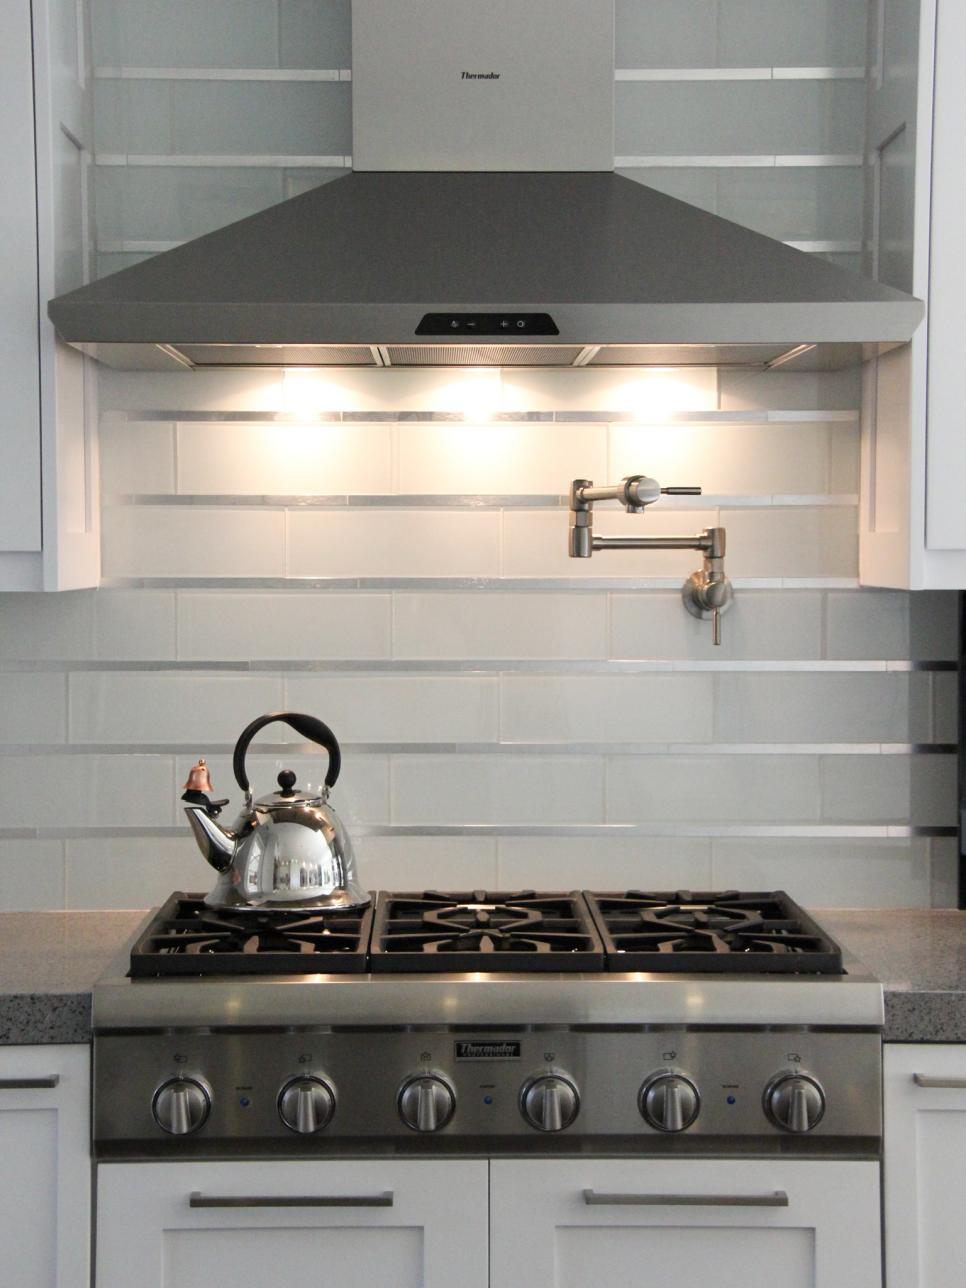 Groovy Stainless Steel Backsplash The Pros And The Cons Download Free Architecture Designs Intelgarnamadebymaigaardcom